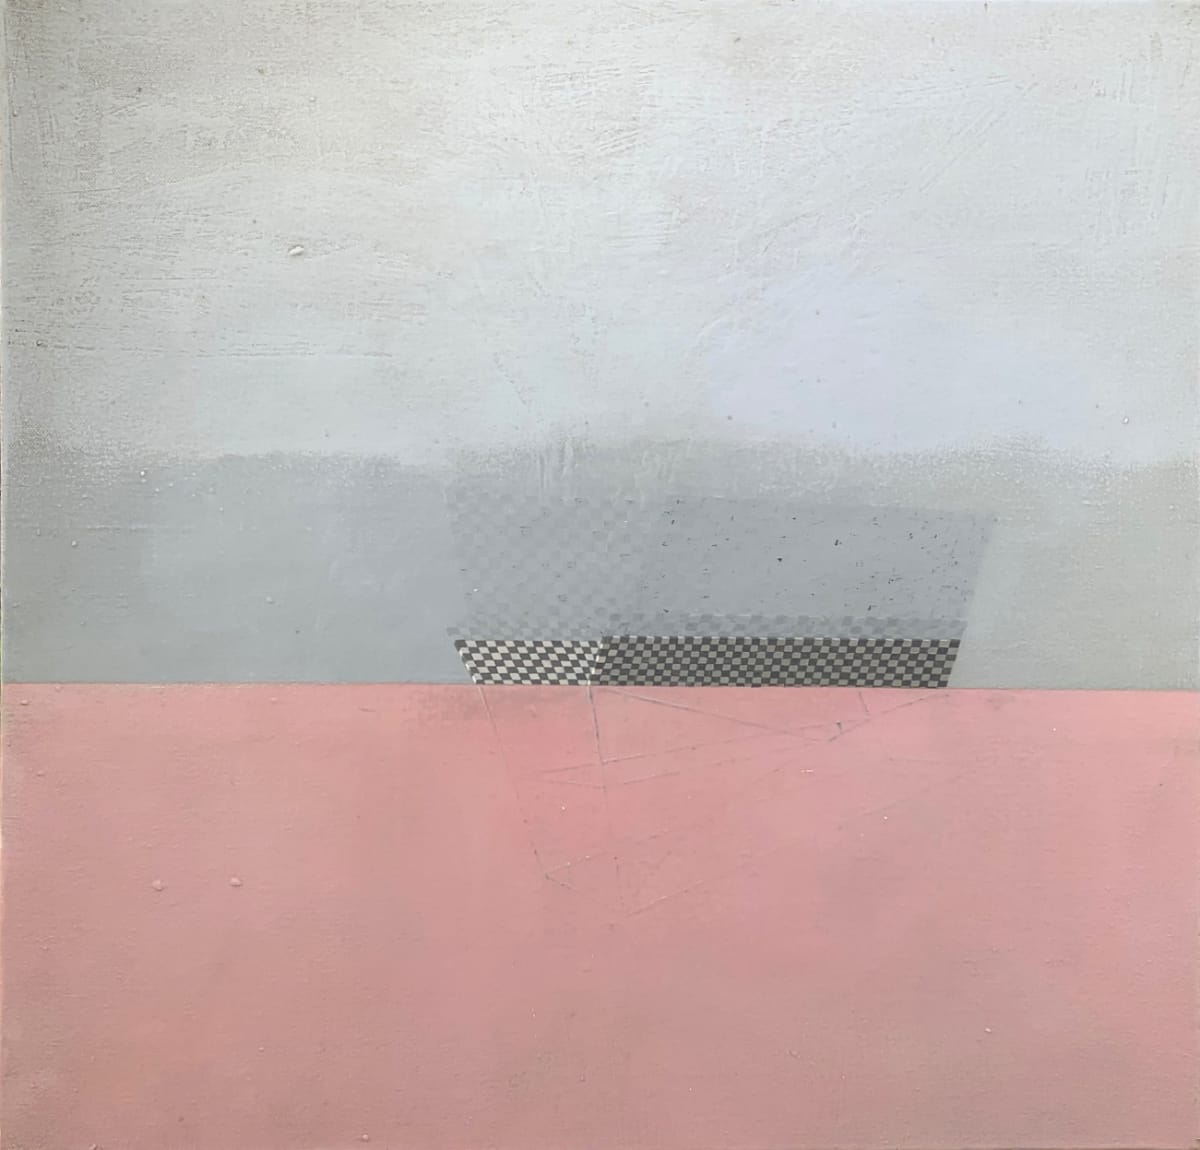 Gillian Lawler, Transition V